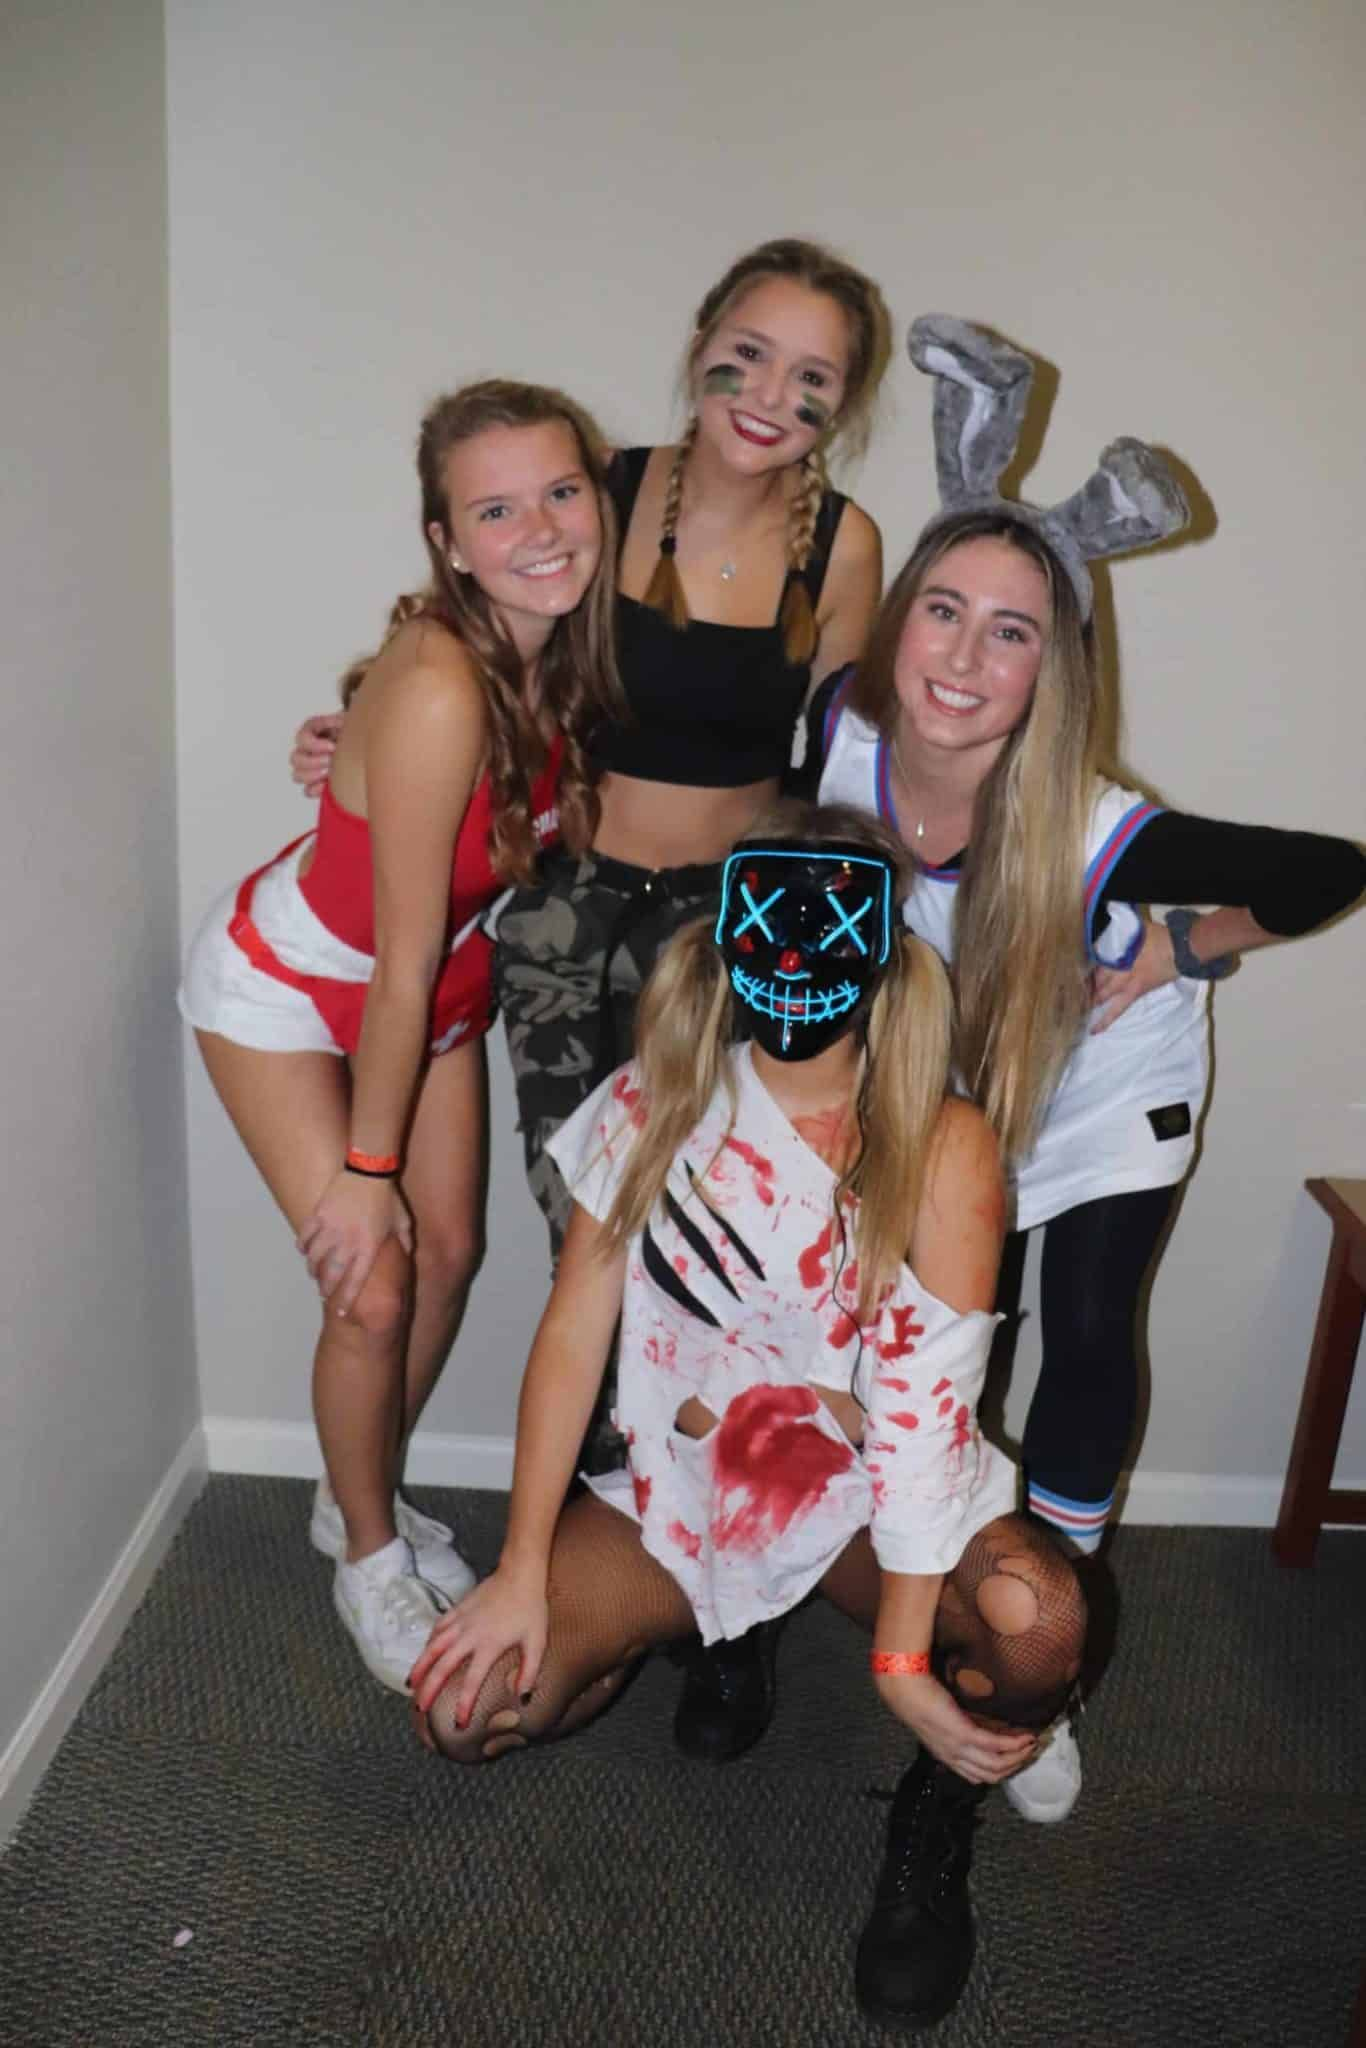 86 Easy College Halloween Costumes That Are Perfect for